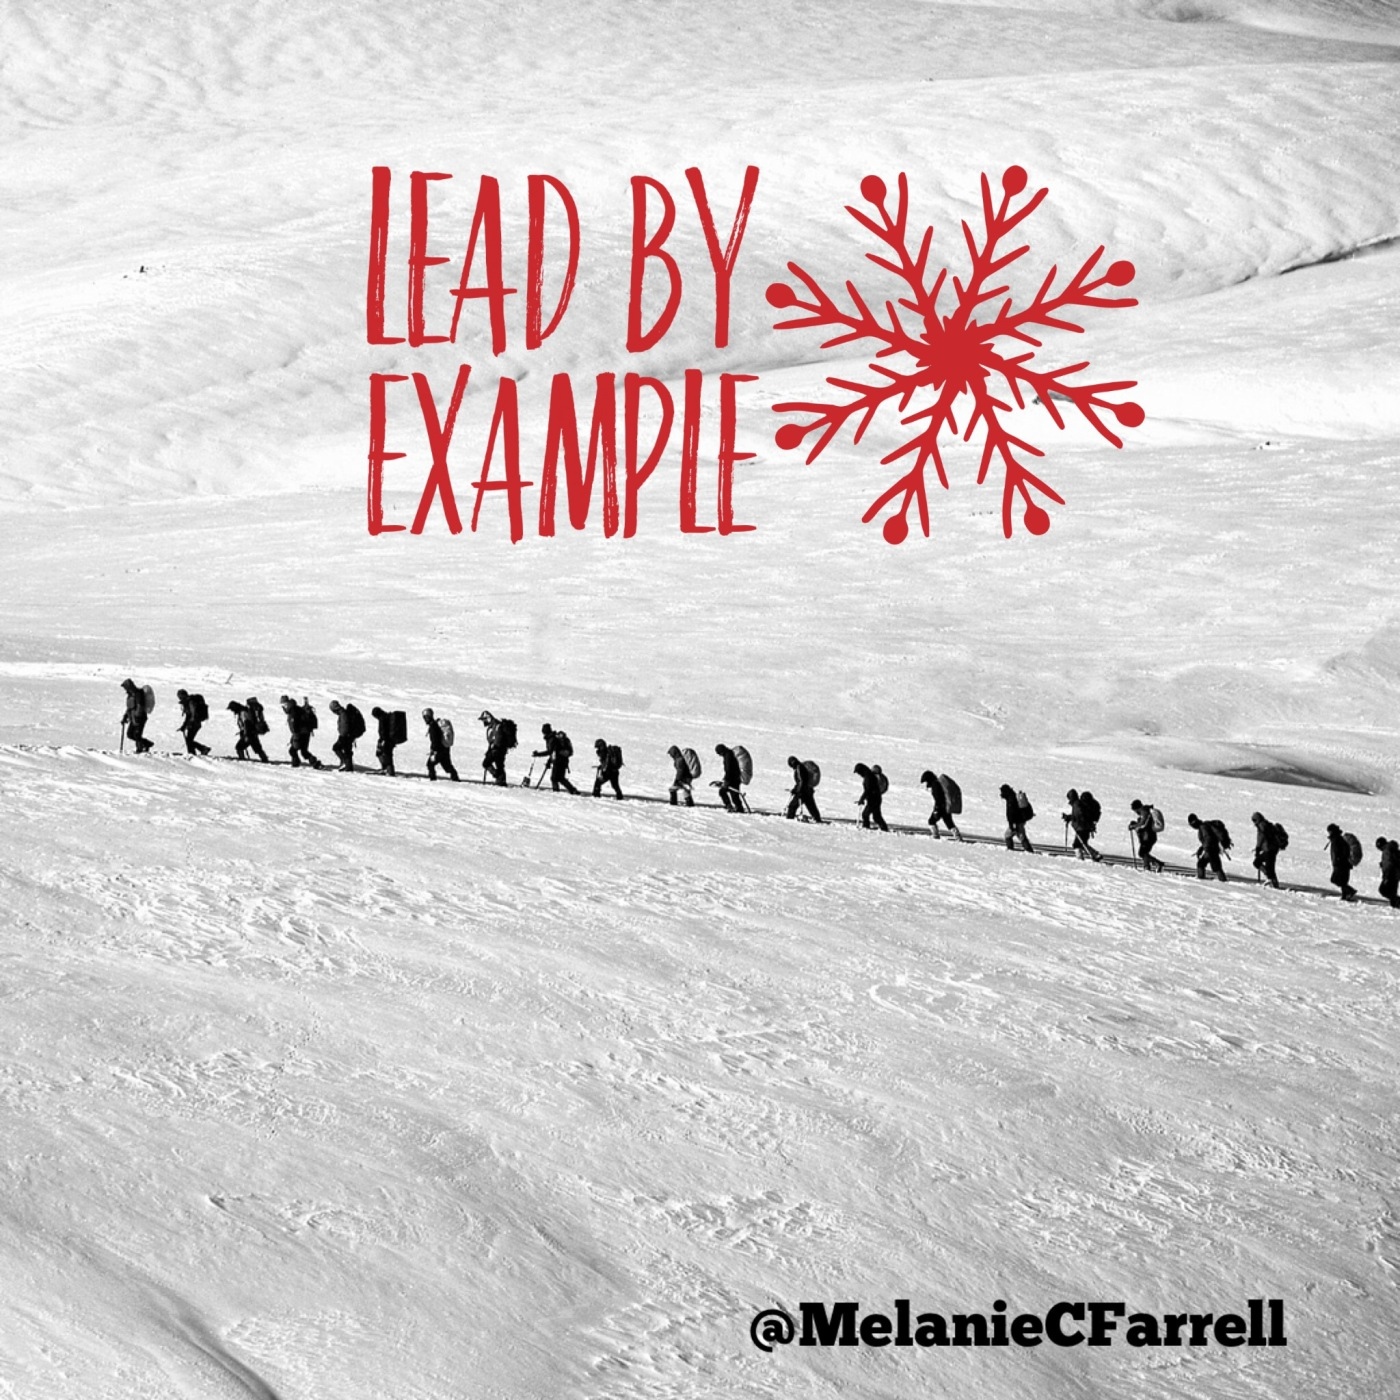 10 Ways To Lead By Example Everyday Aha Moments In Education